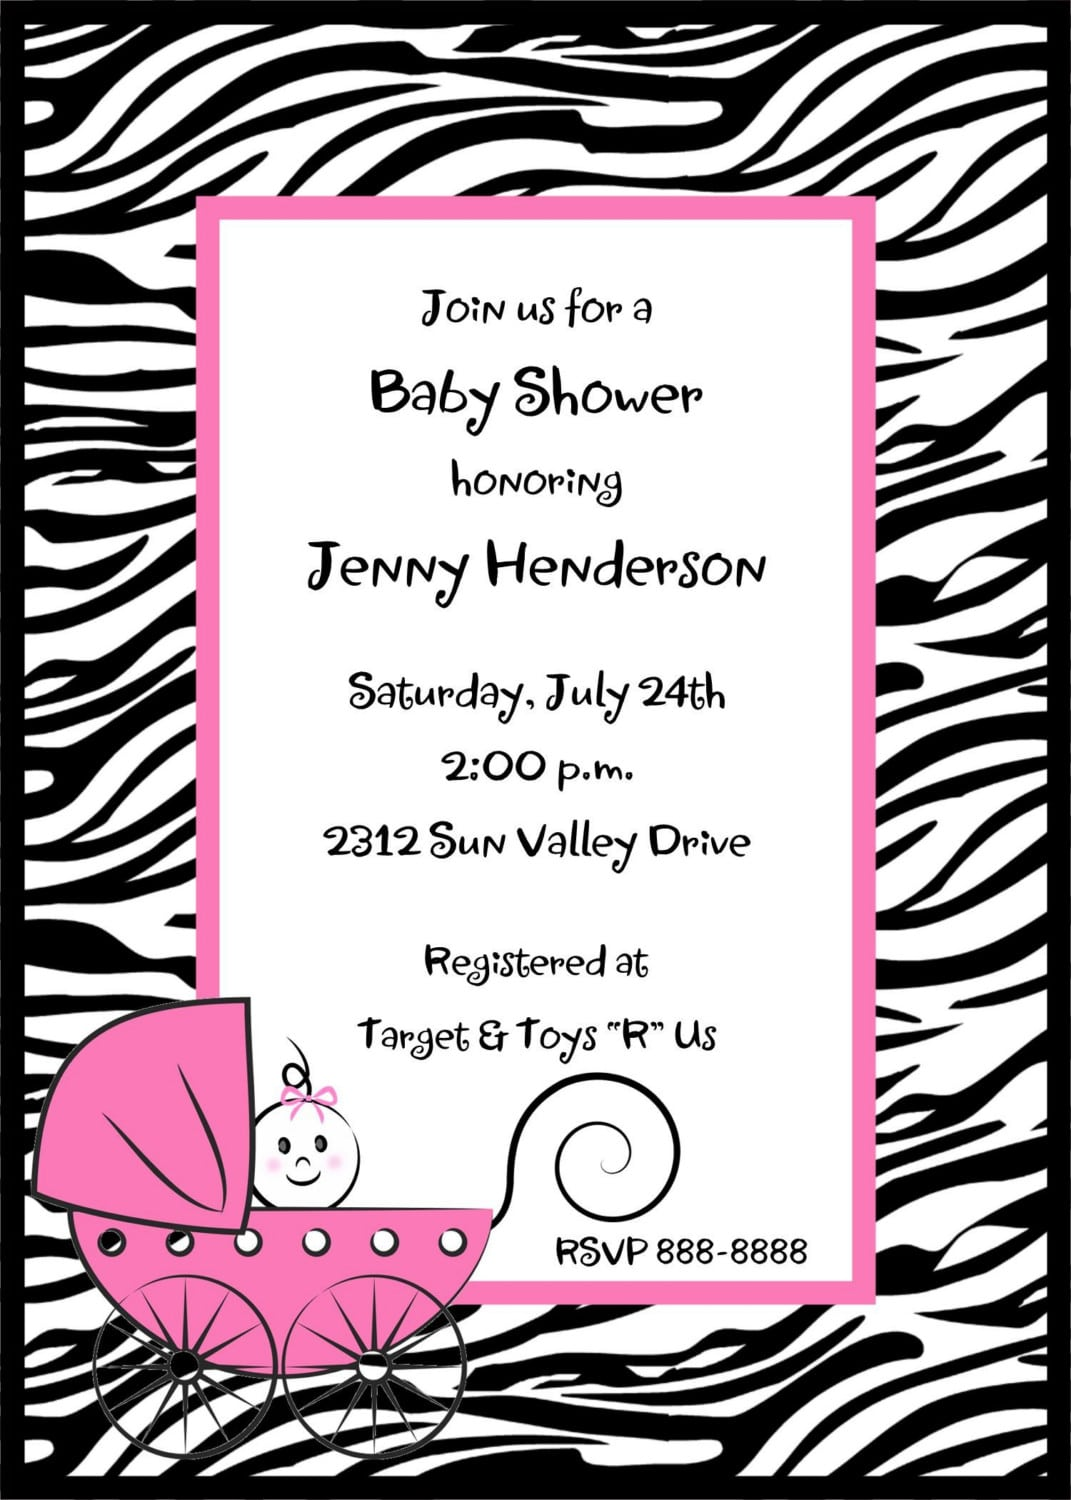 Free pink zebra baby shower invitation template invitationswedd pink zebra baby shower invitation template filmwisefo